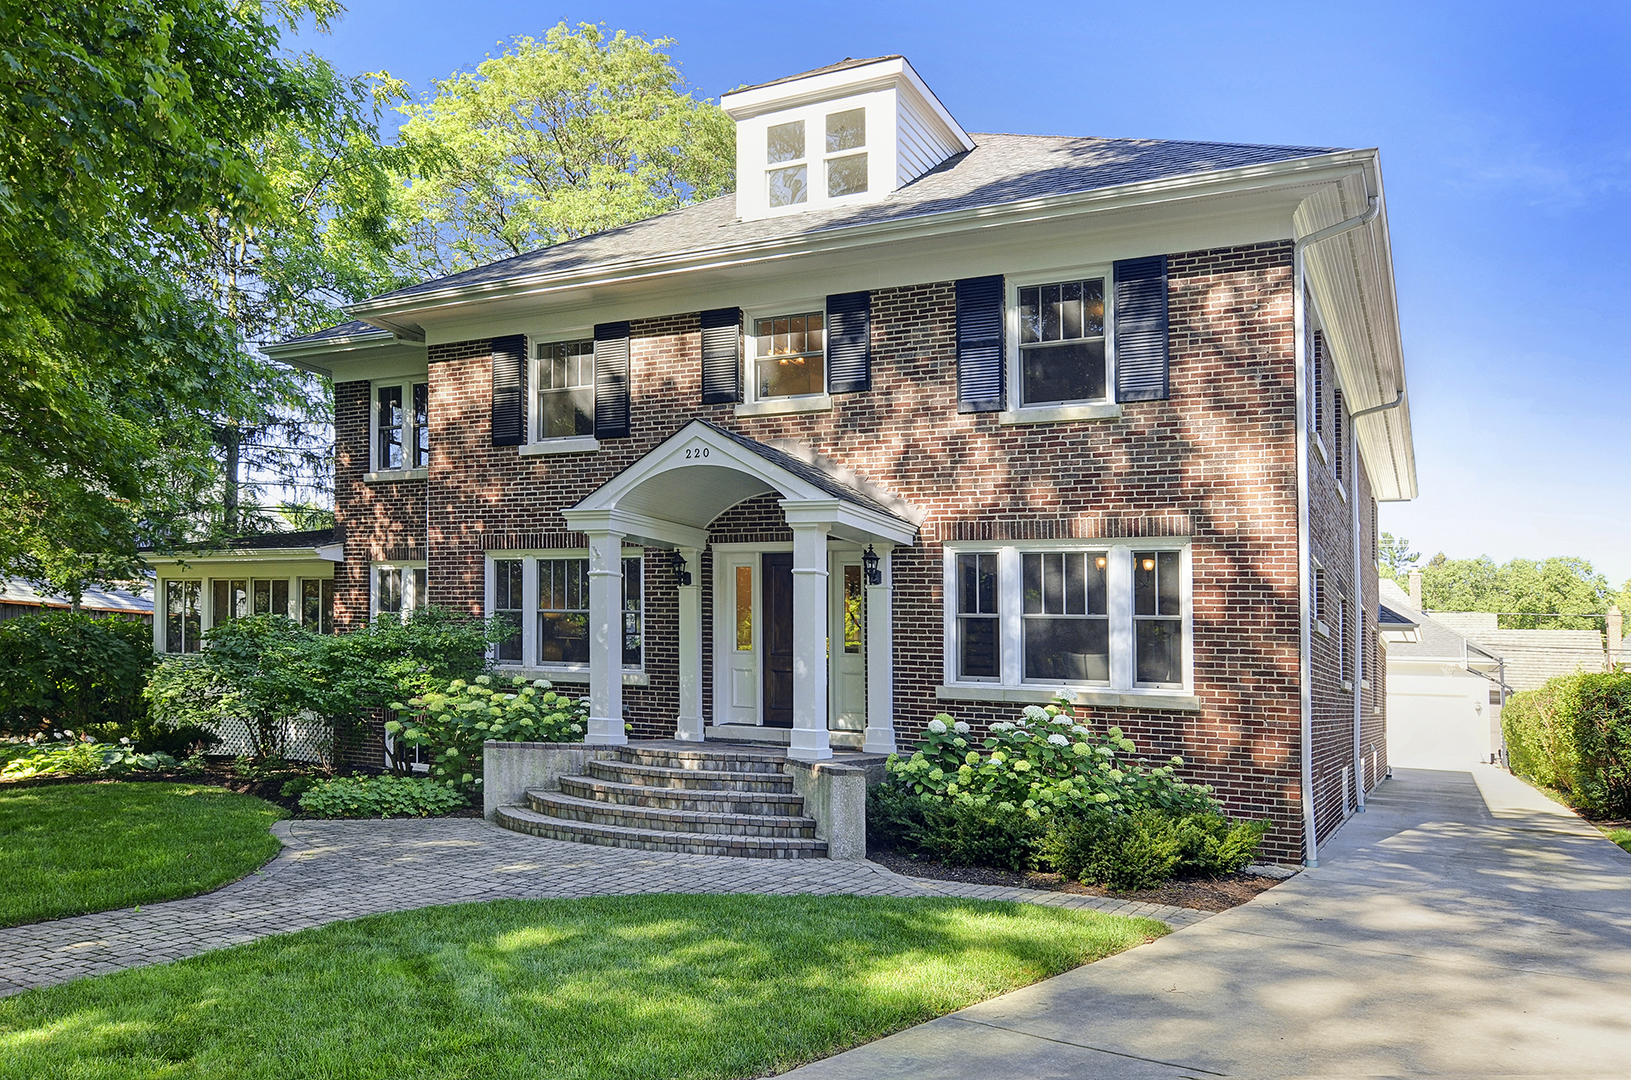 220 North Lincoln Street, Hinsdale, IL - USA (photo 2)